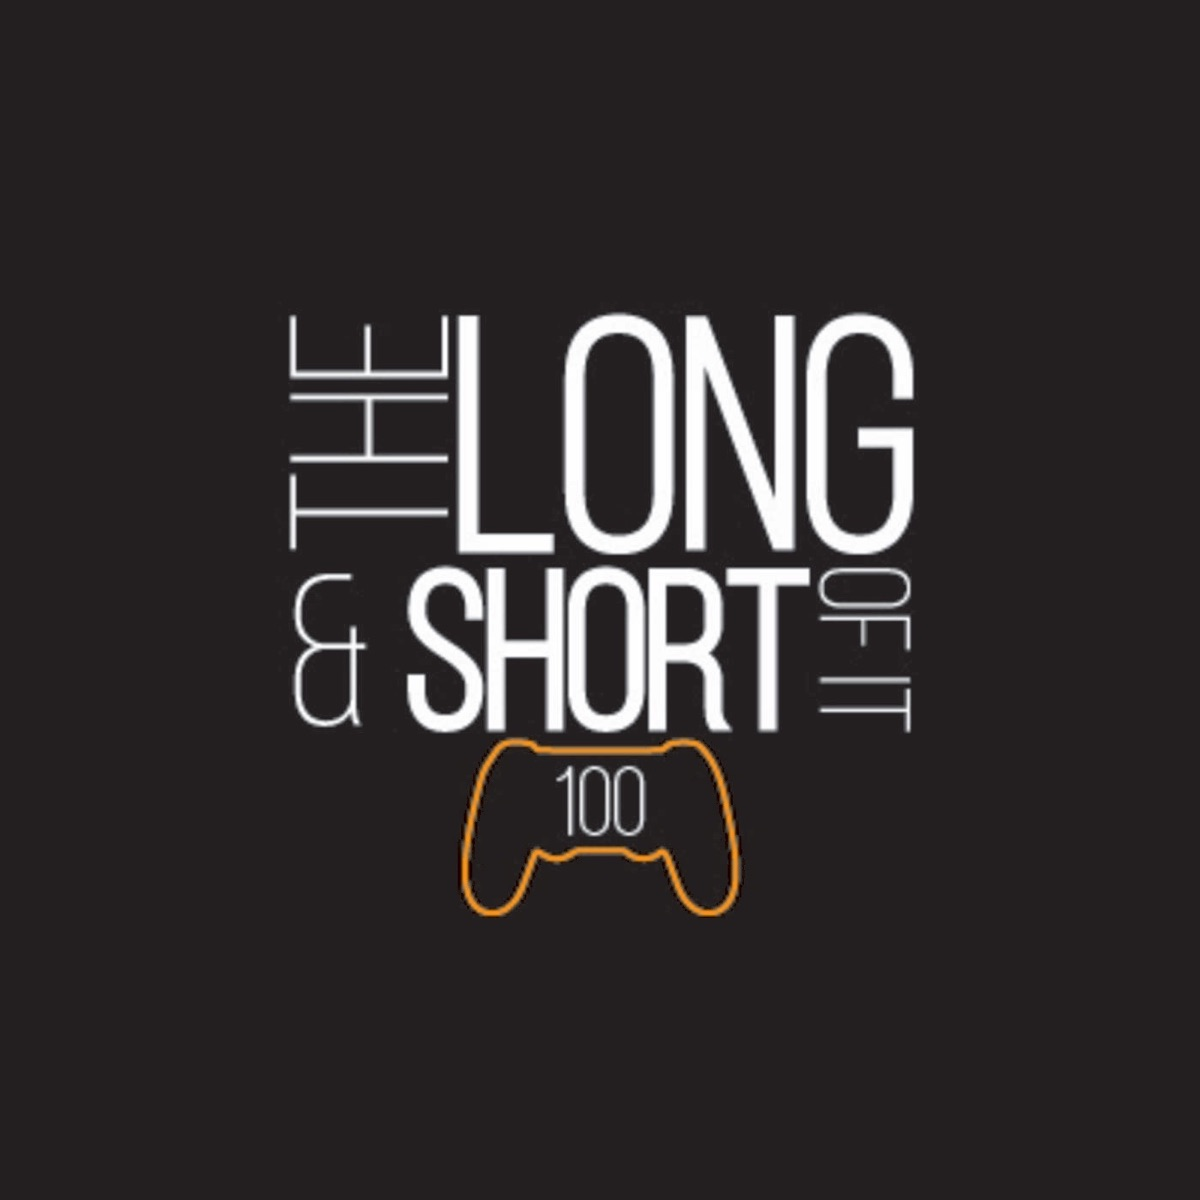 The Long & Short of It